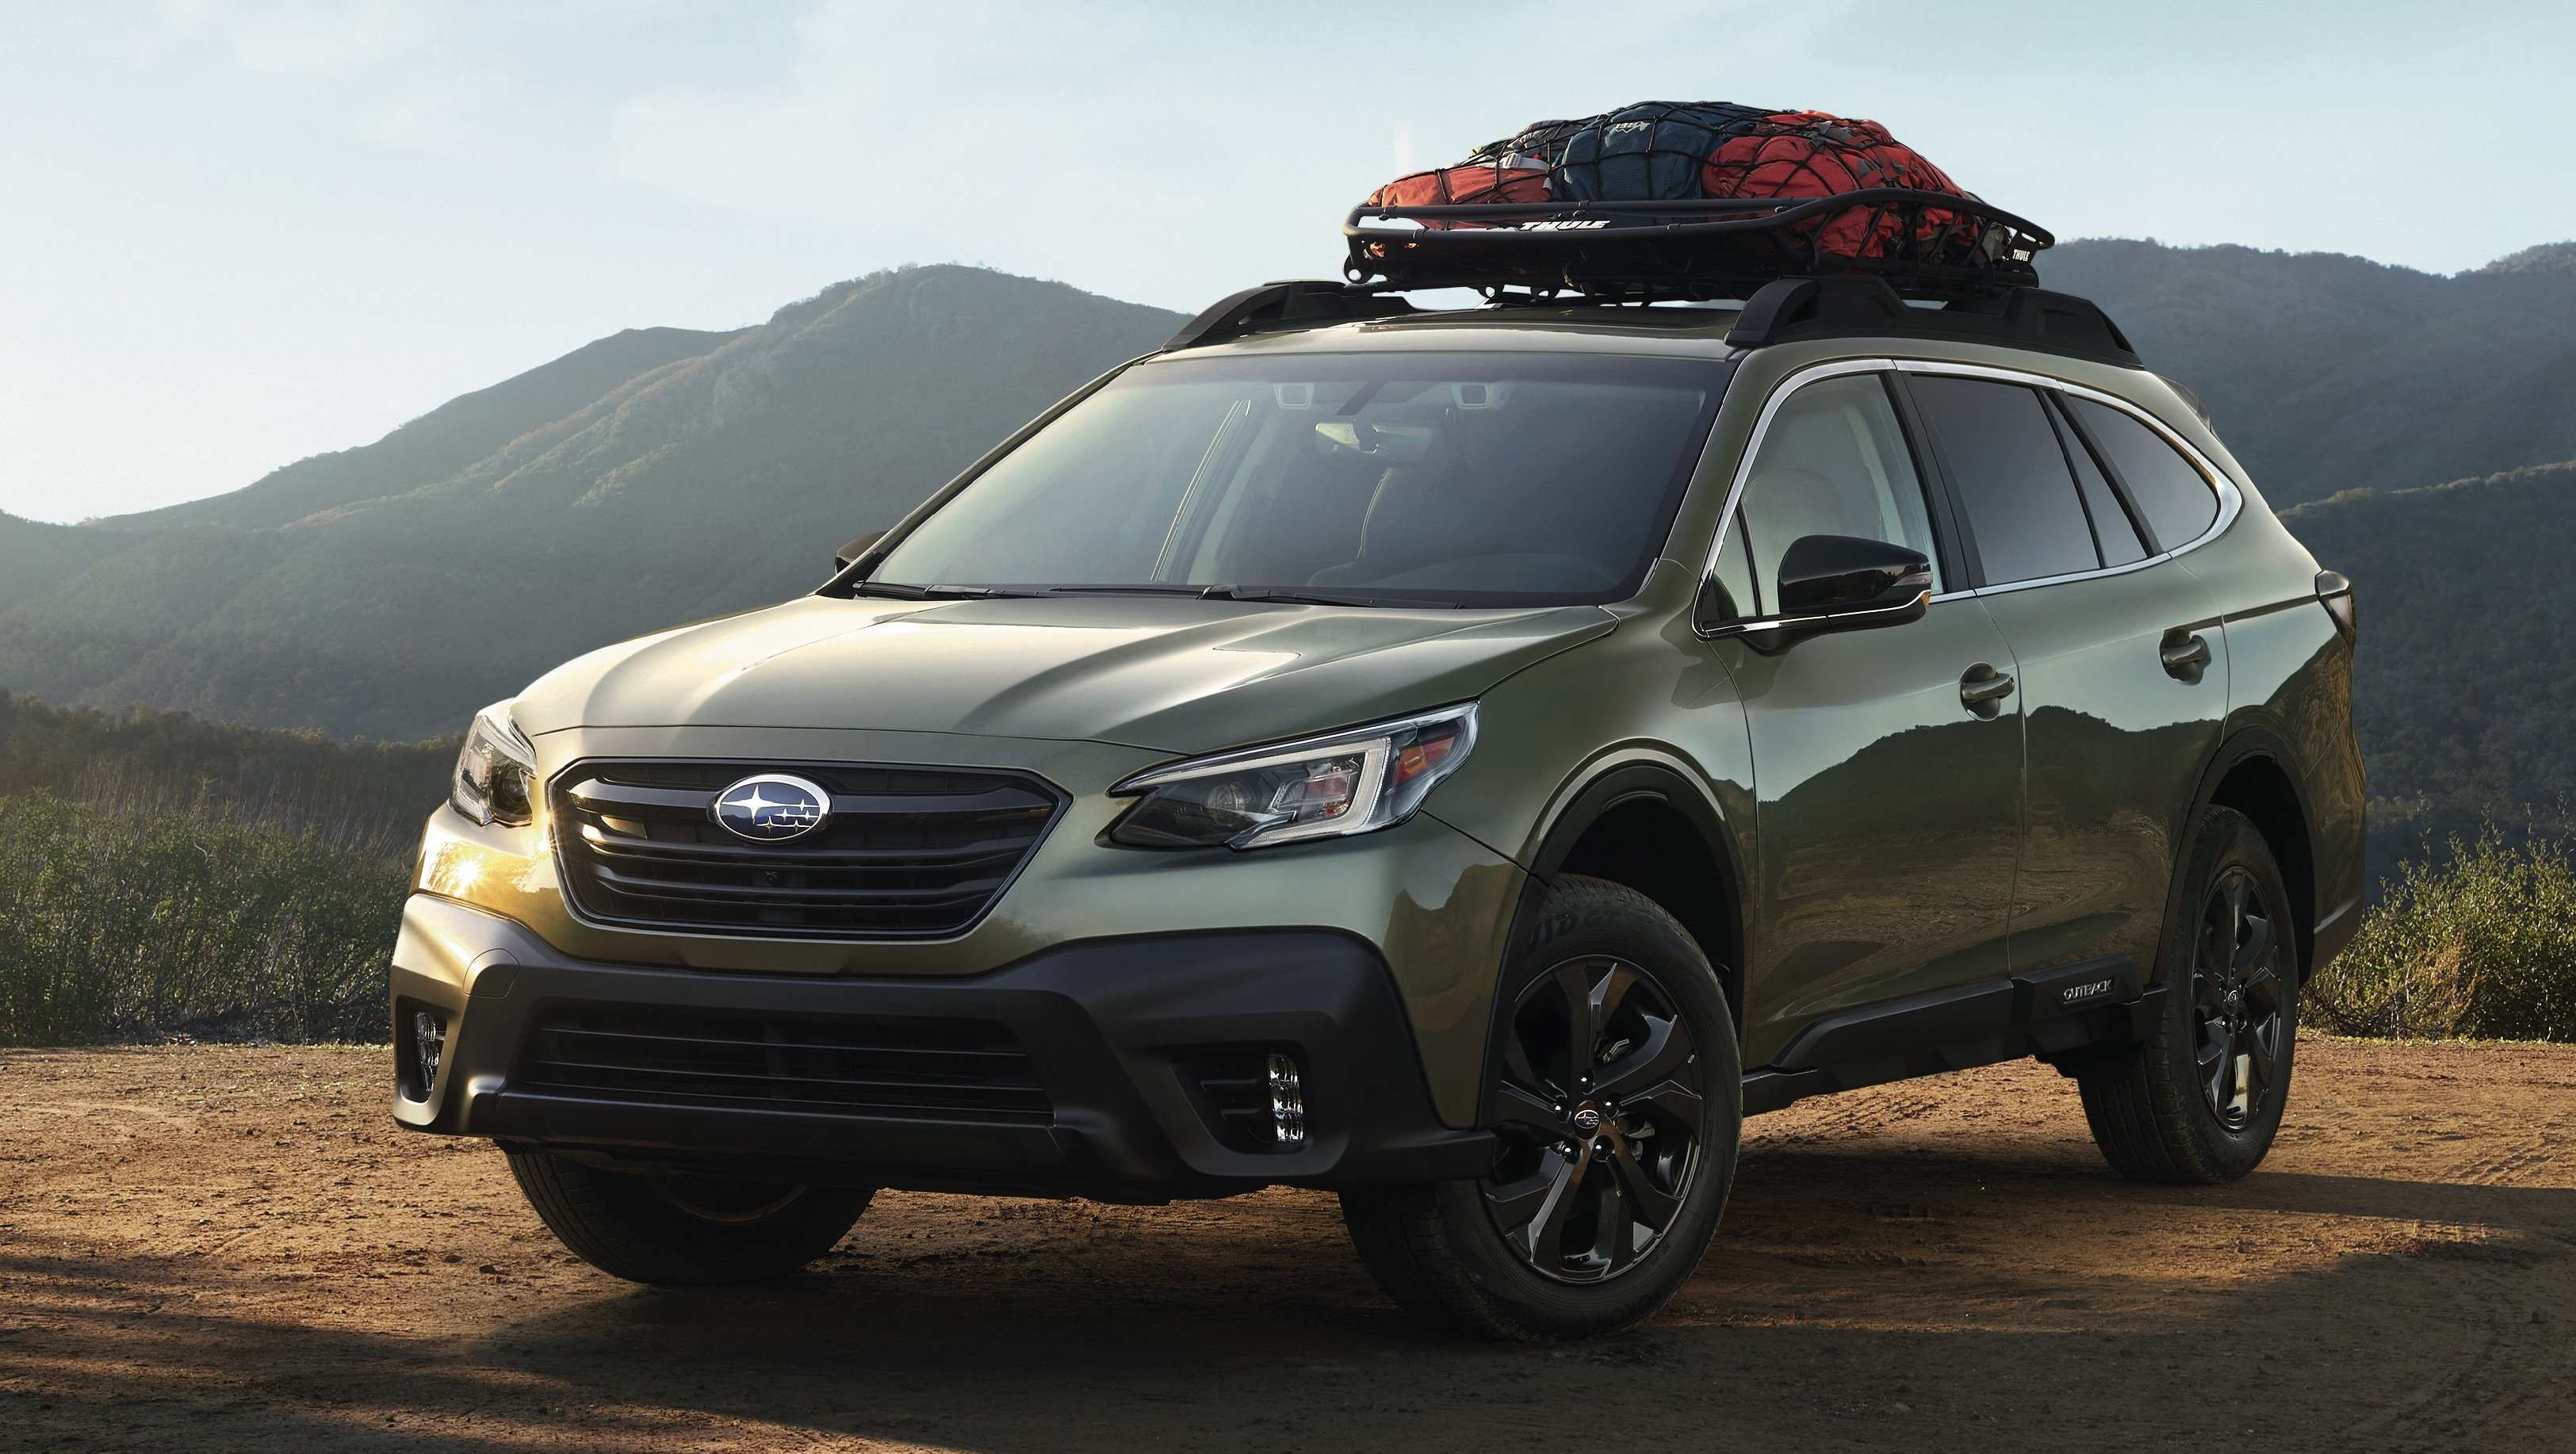 89 All New 2020 Subaru Liberty Release Date And Concept